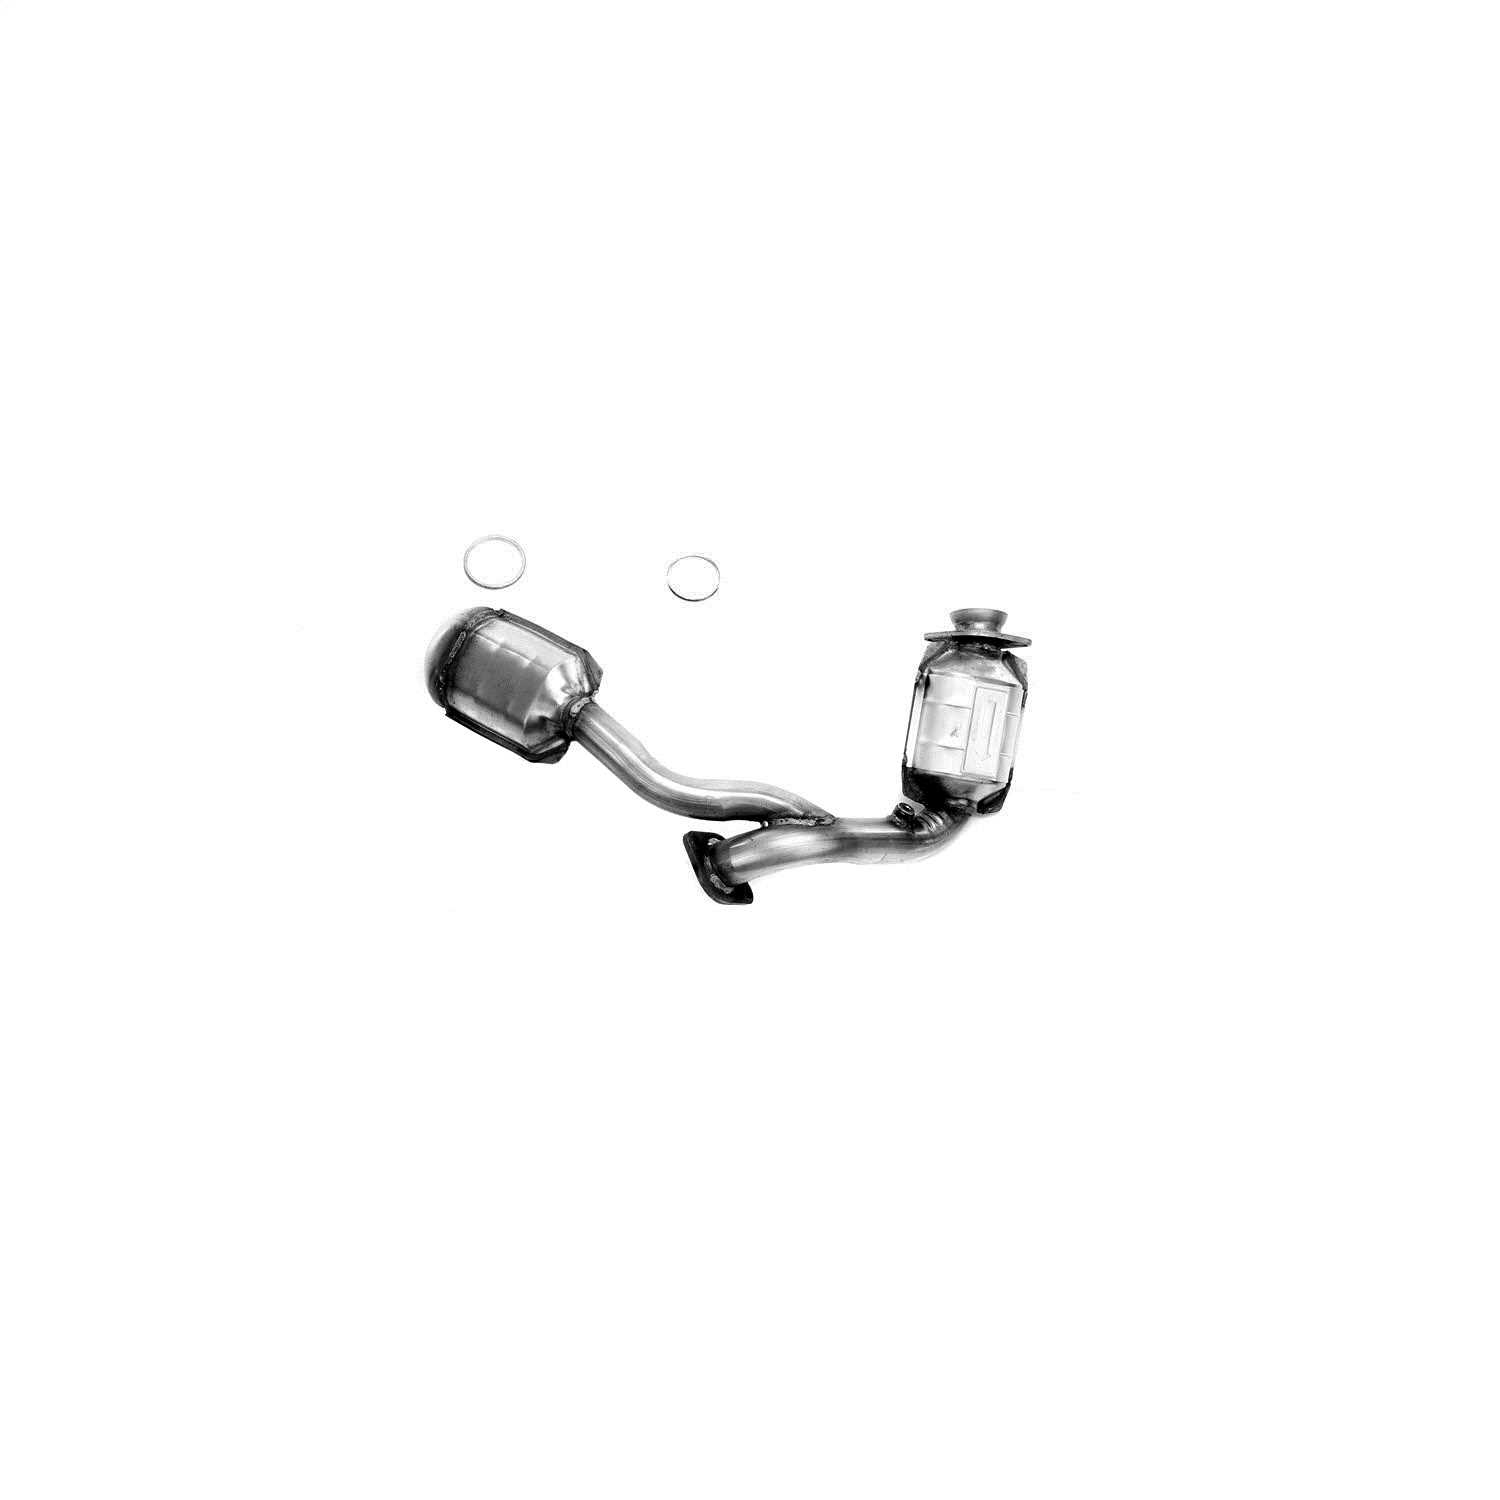 2024184 Flowmaster 49 State Catalytic Converters Direct Fit Catalytic Converter